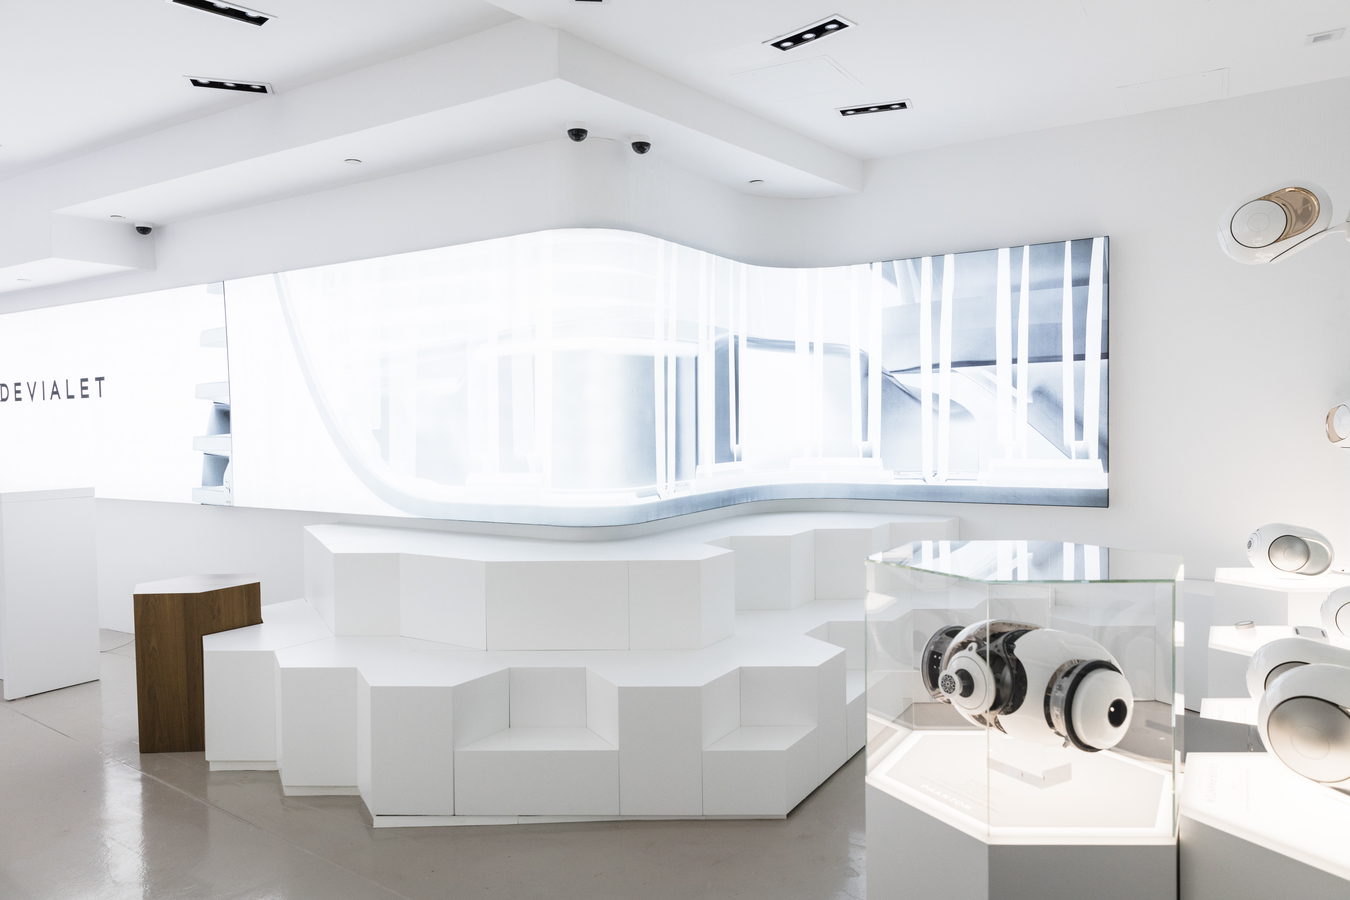 A view of the store's white interior space with Phantom speakers on display and a seating area of angular blocks.